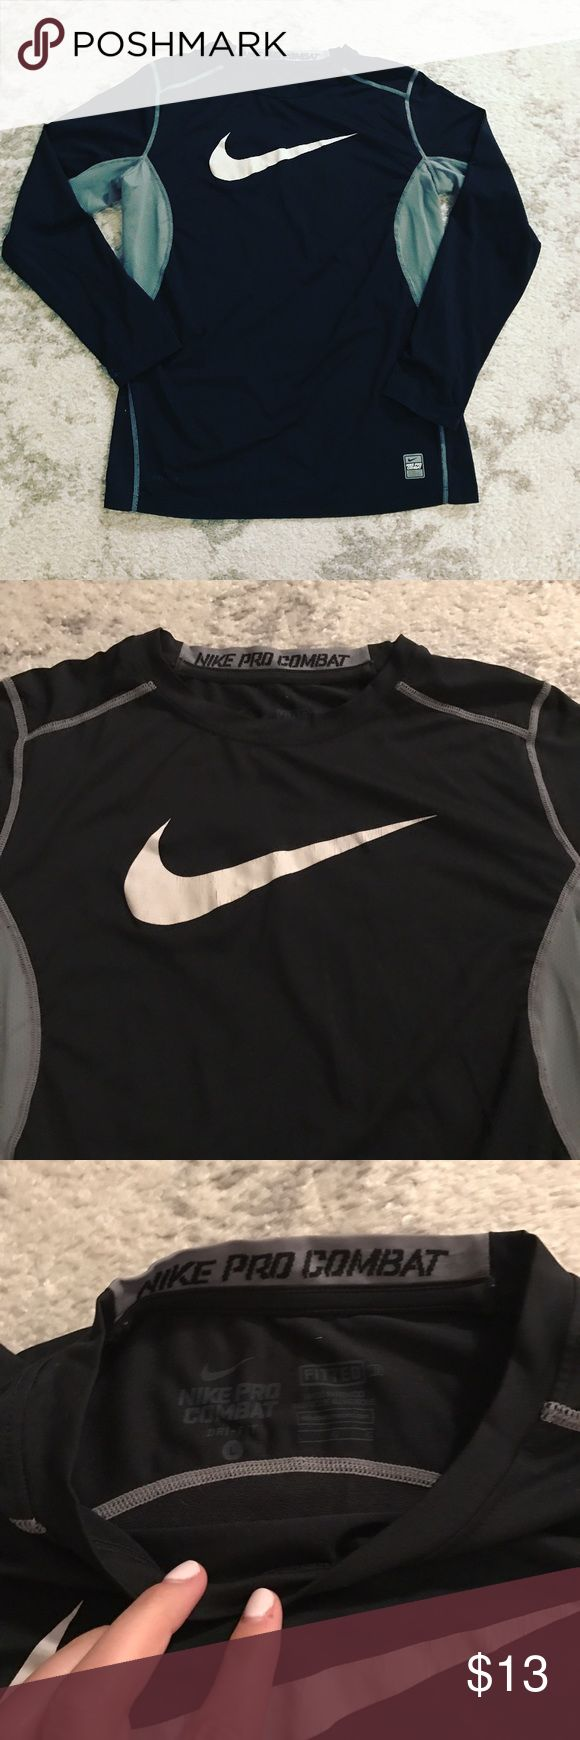 Black & gray Nike Pro Combat fitted shirt Black fitted Nike Pro Combat long sleeve shirt with gray stitching and gray mesh sides. White Nike swoosh logo screened on the front of the shirt in white. This is a Boys' Large, but could probably fit a Women's Small. This shirt is worn (see photos of Nike swoosh), but there is still a lot of life left in it! Nike Shirts & Tops Tees - Long Sleeve